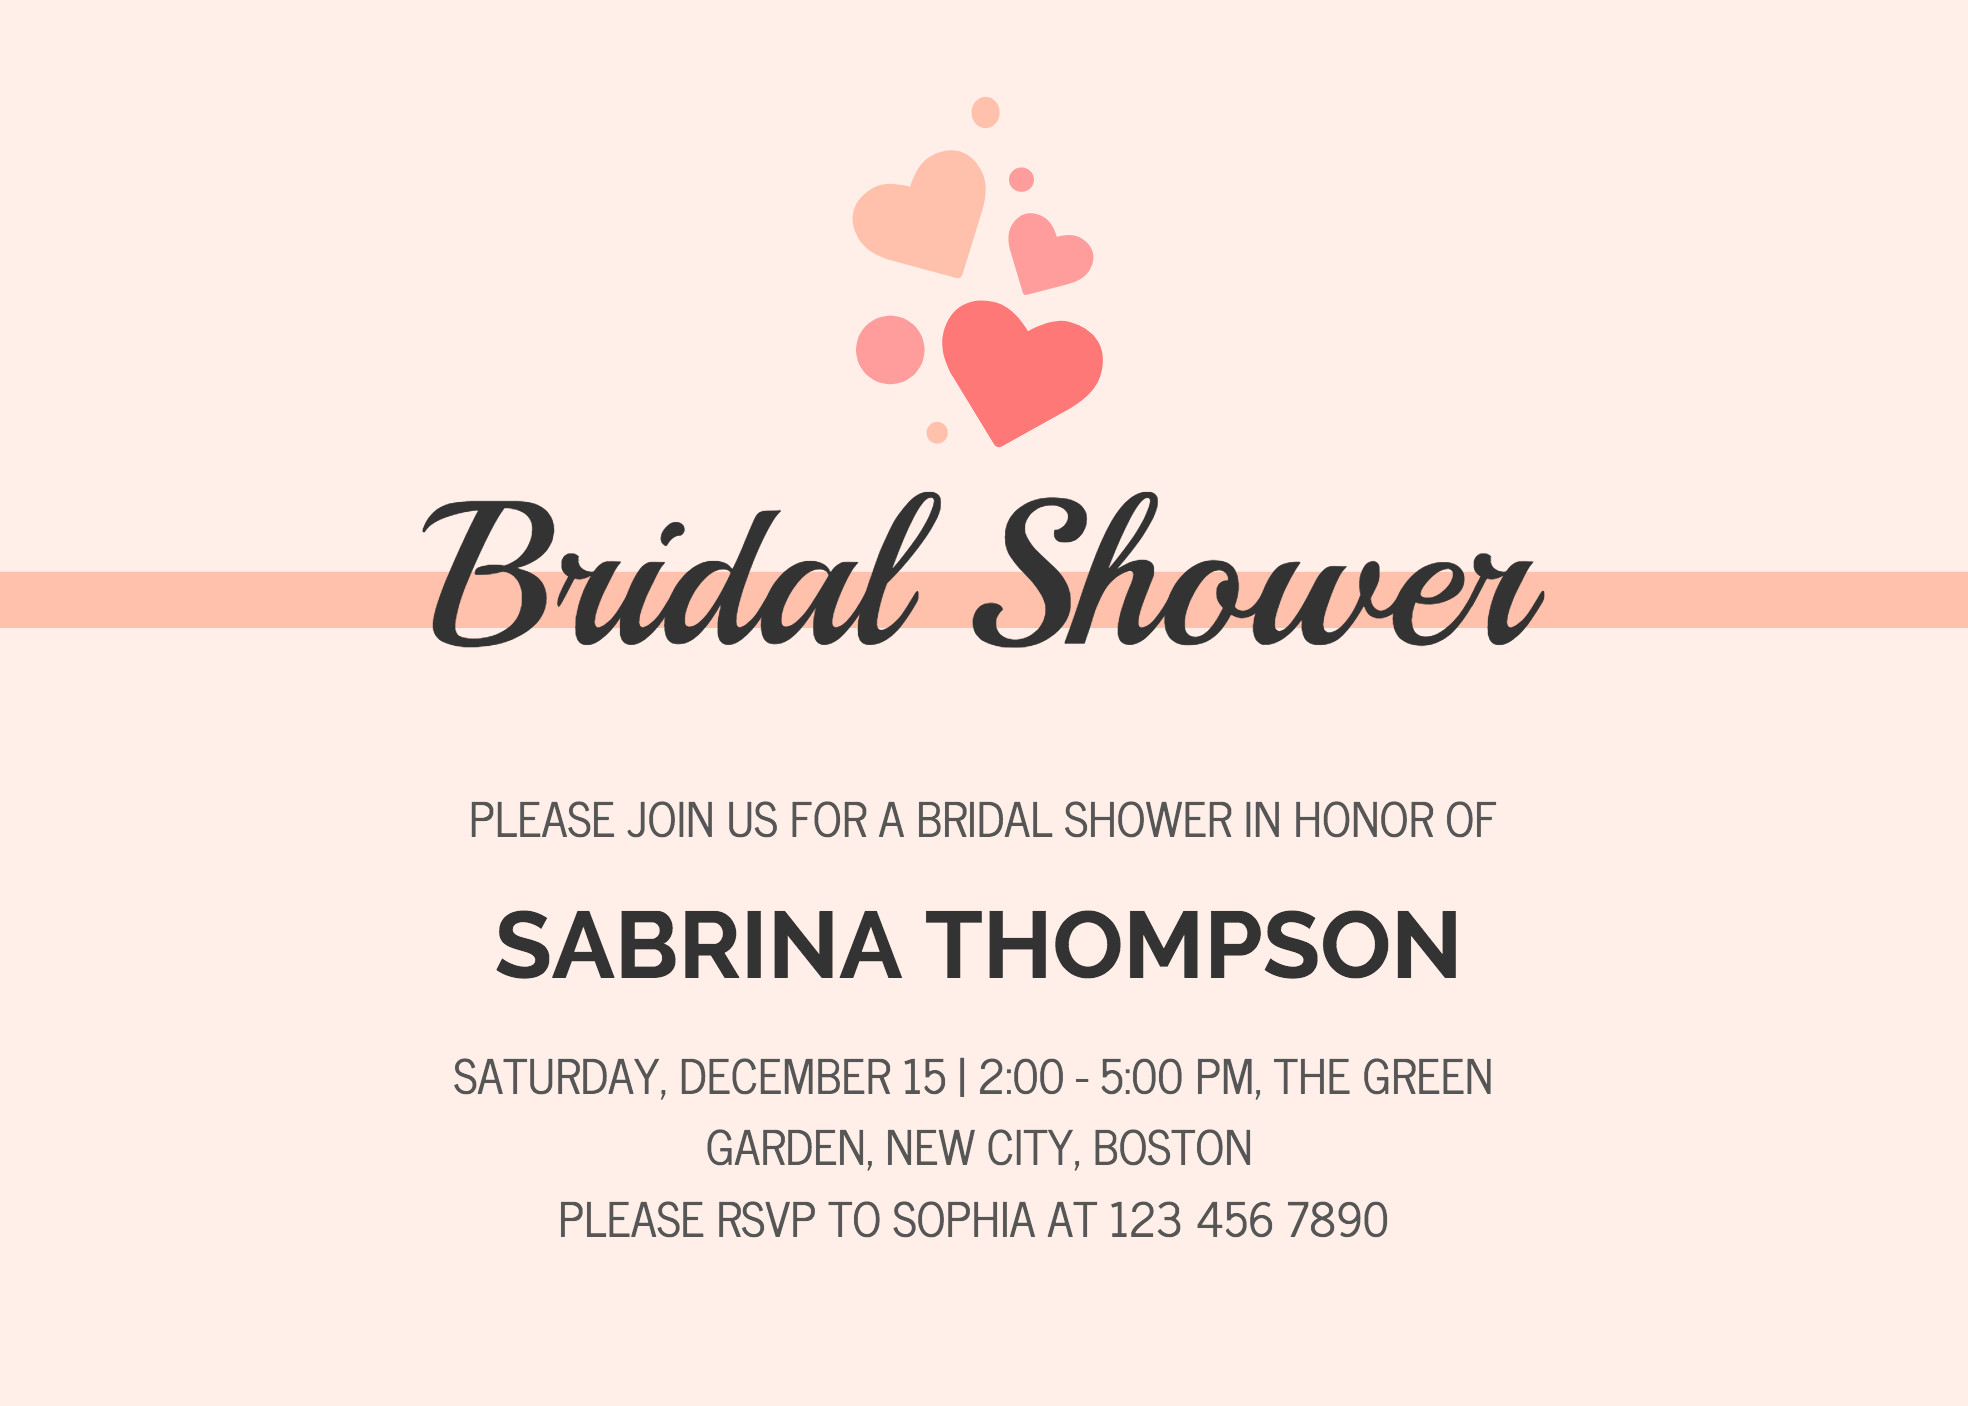 Wedding Shower Invitation Templates 19 Diy Bridal Shower and Wedding Invitation Templates